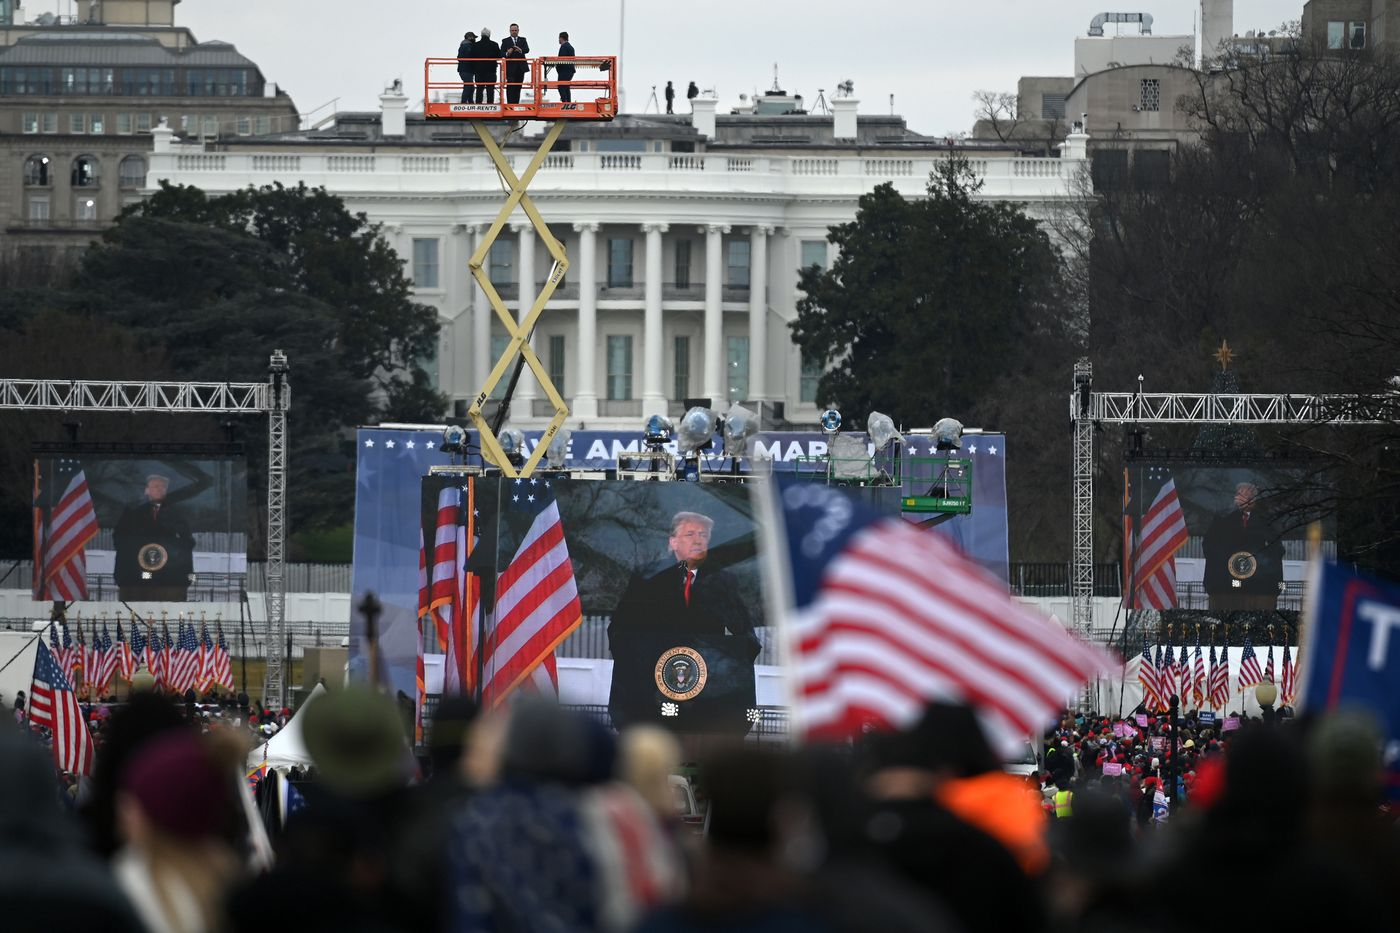 President Donald Trump speaks to supporters gathered at the White House on Jan. 6, 2021, in Washington, D.C. Washington Post photo by Matt McClain